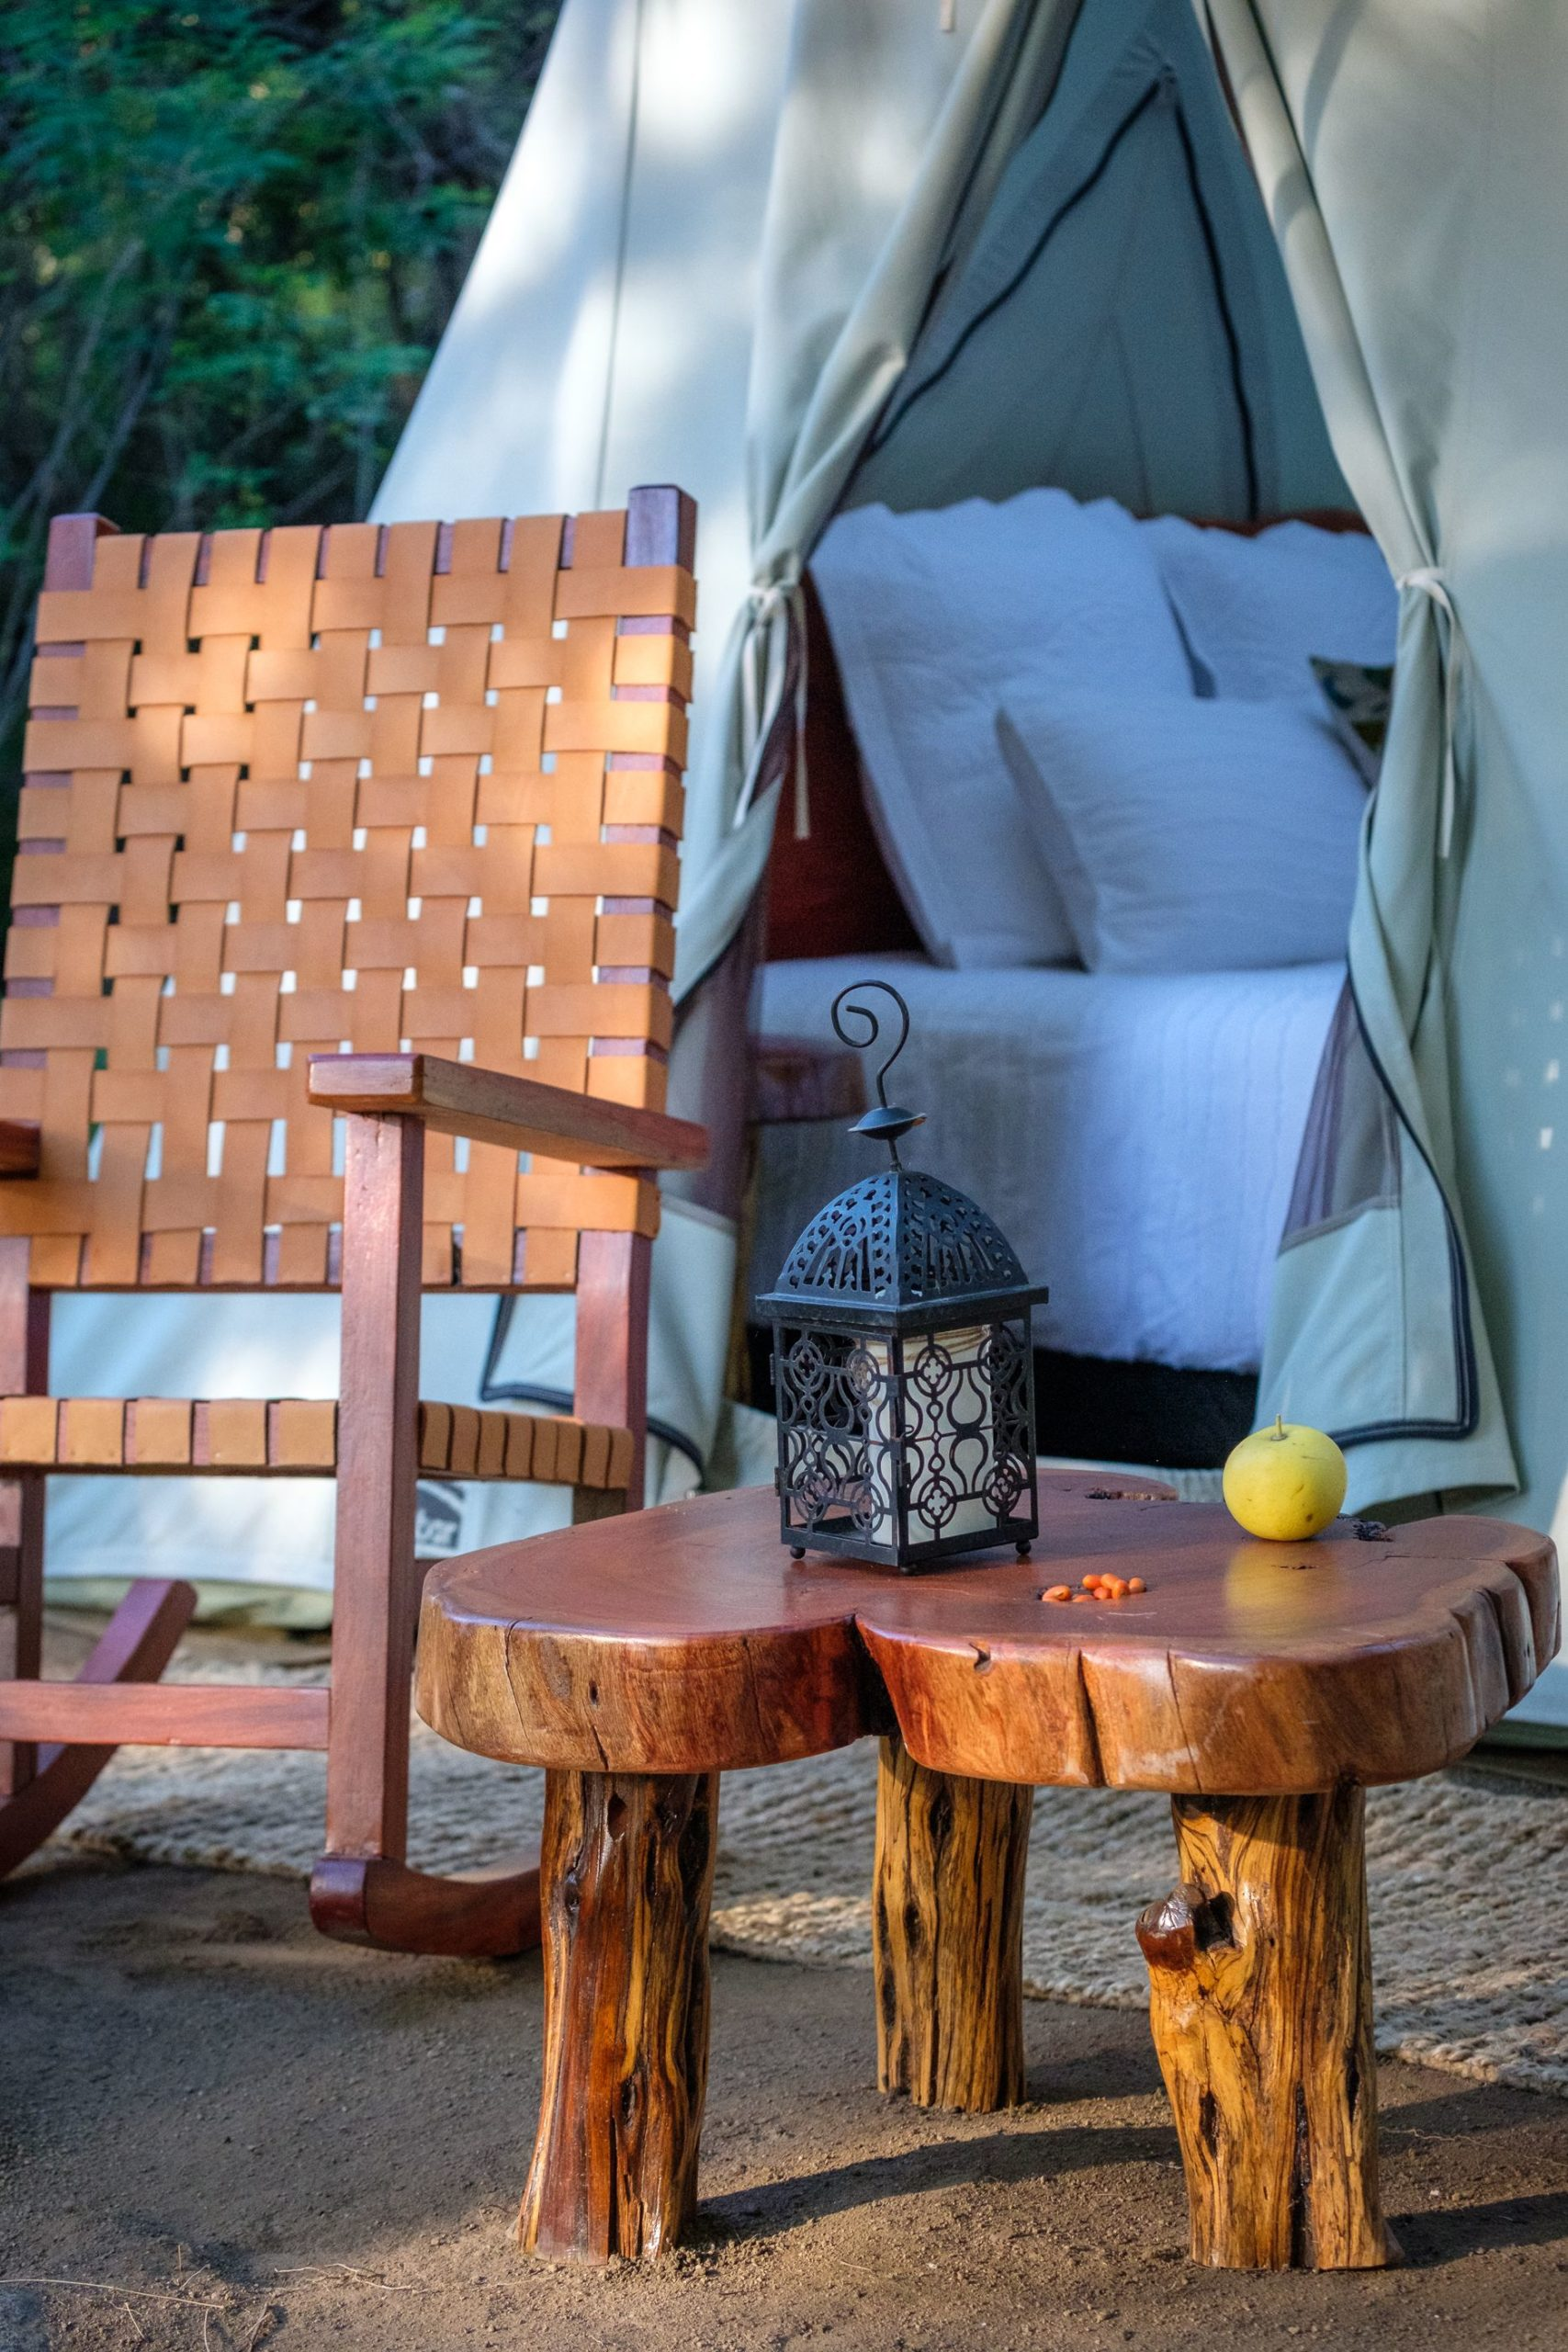 comfortable rocking chair set up outside luxury tent